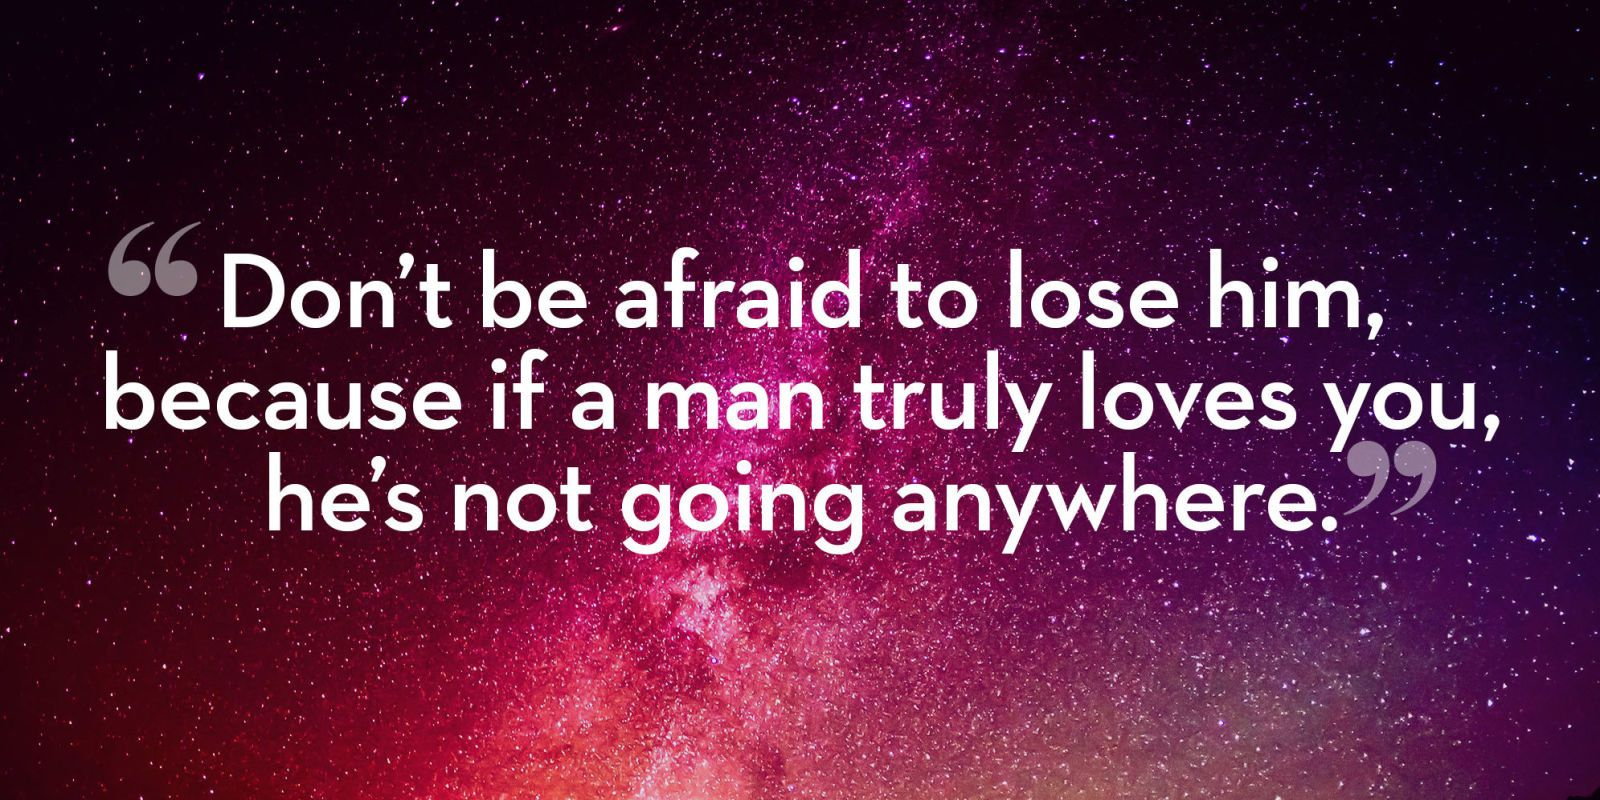 If a man really loves you will he come back